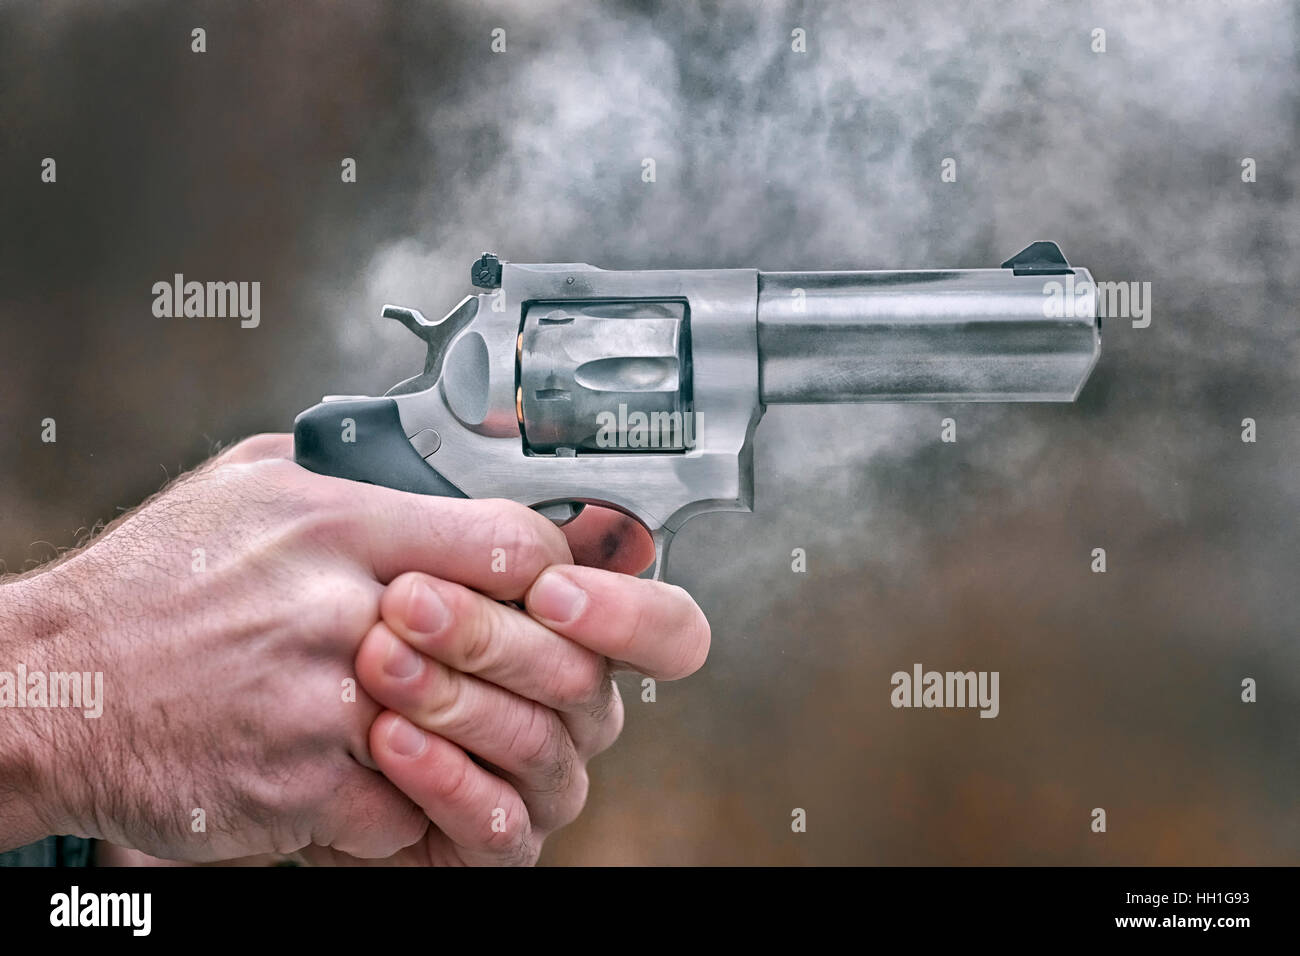 Revolver handgun surrounded with smoke moment after being discharged - Stock Image